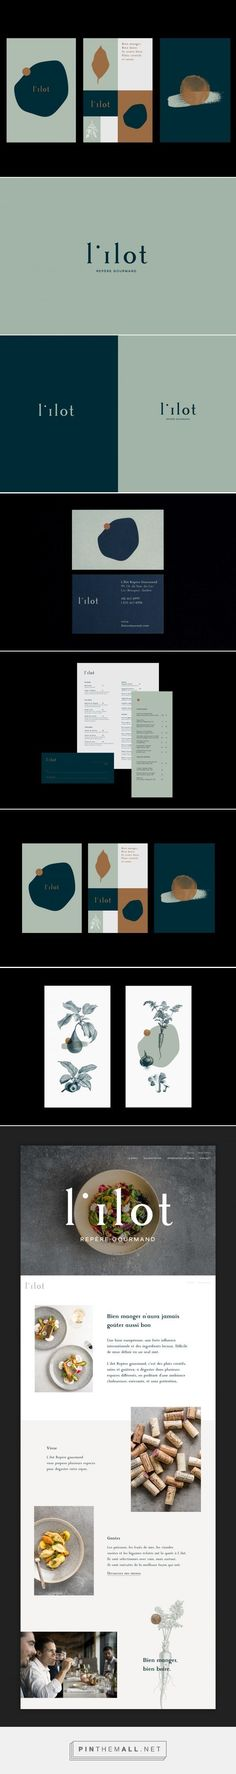 Branding board and complete brand identity for a modern and arty brand that is colorful, yet minimalist. Blue and mint green combined to a color palette that looks professional and functional with a p - My Design Ideas 2019 Corporate Design, Brand Identity Design, Graphic Design Branding, Modern Graphic Design, Logo Branding, Branding Agency, Corporate Identity, Slow Design, Web Design